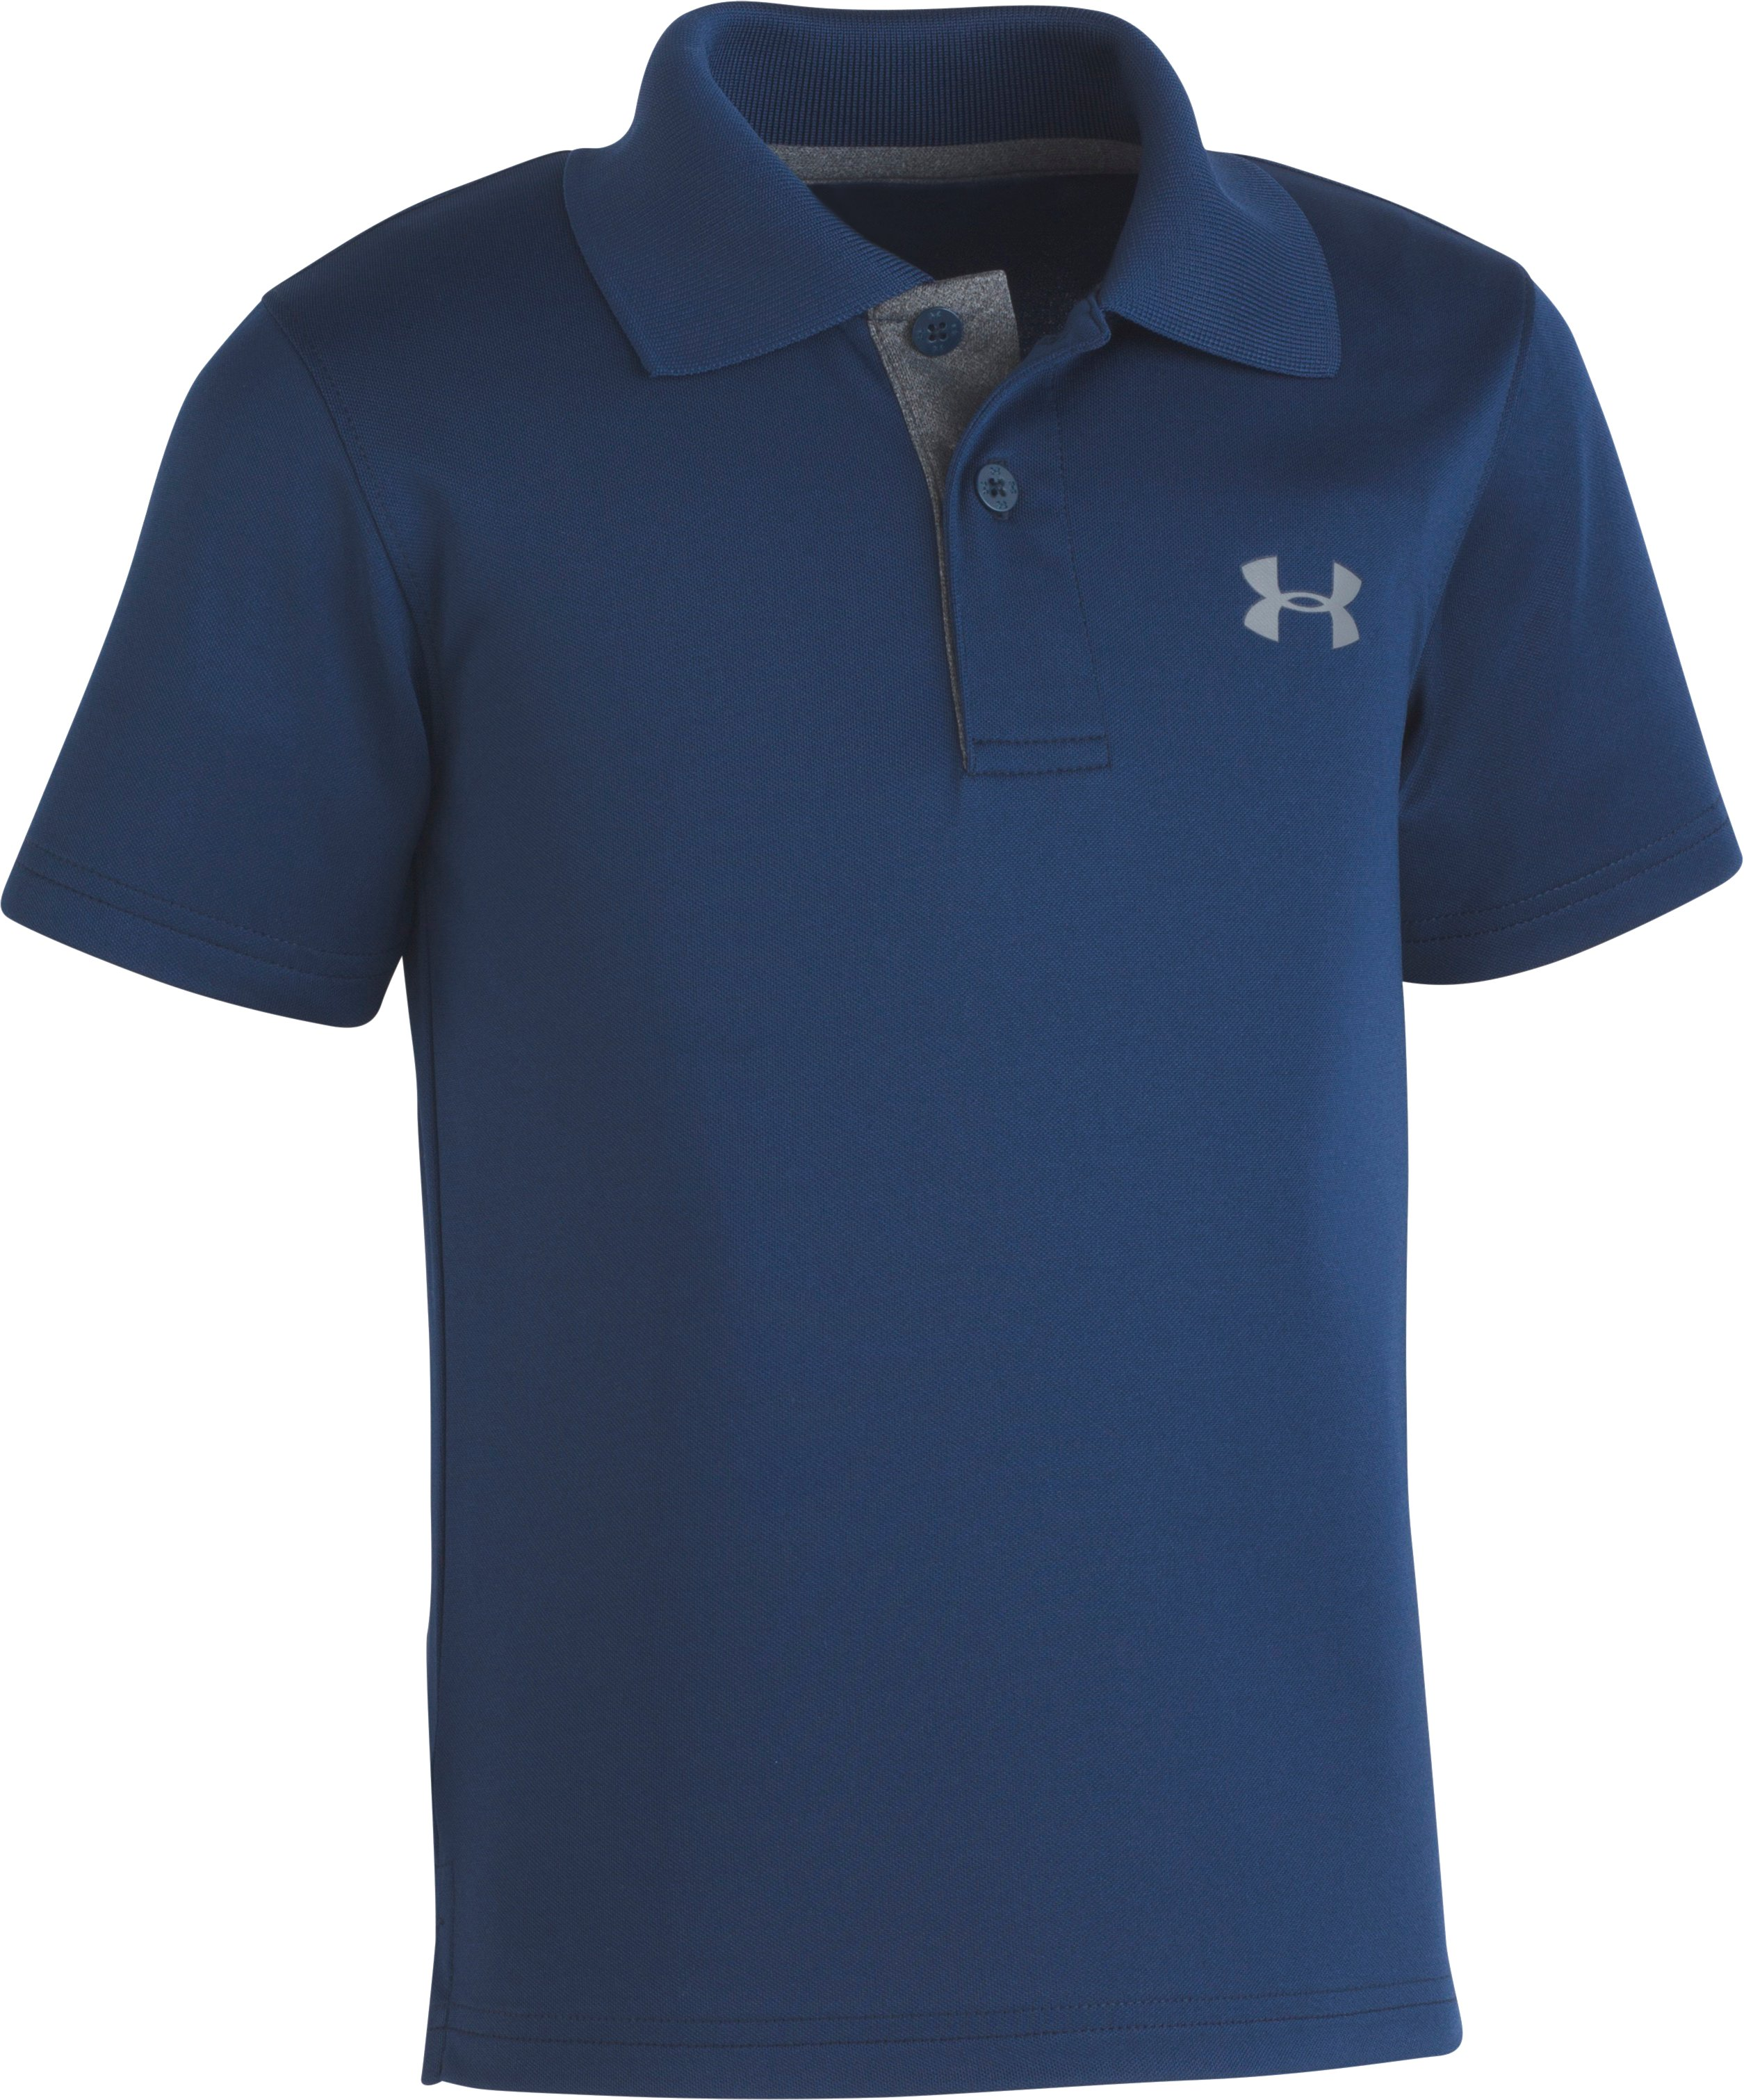 Boys' Pre-School UA Match Play Polo, Academy